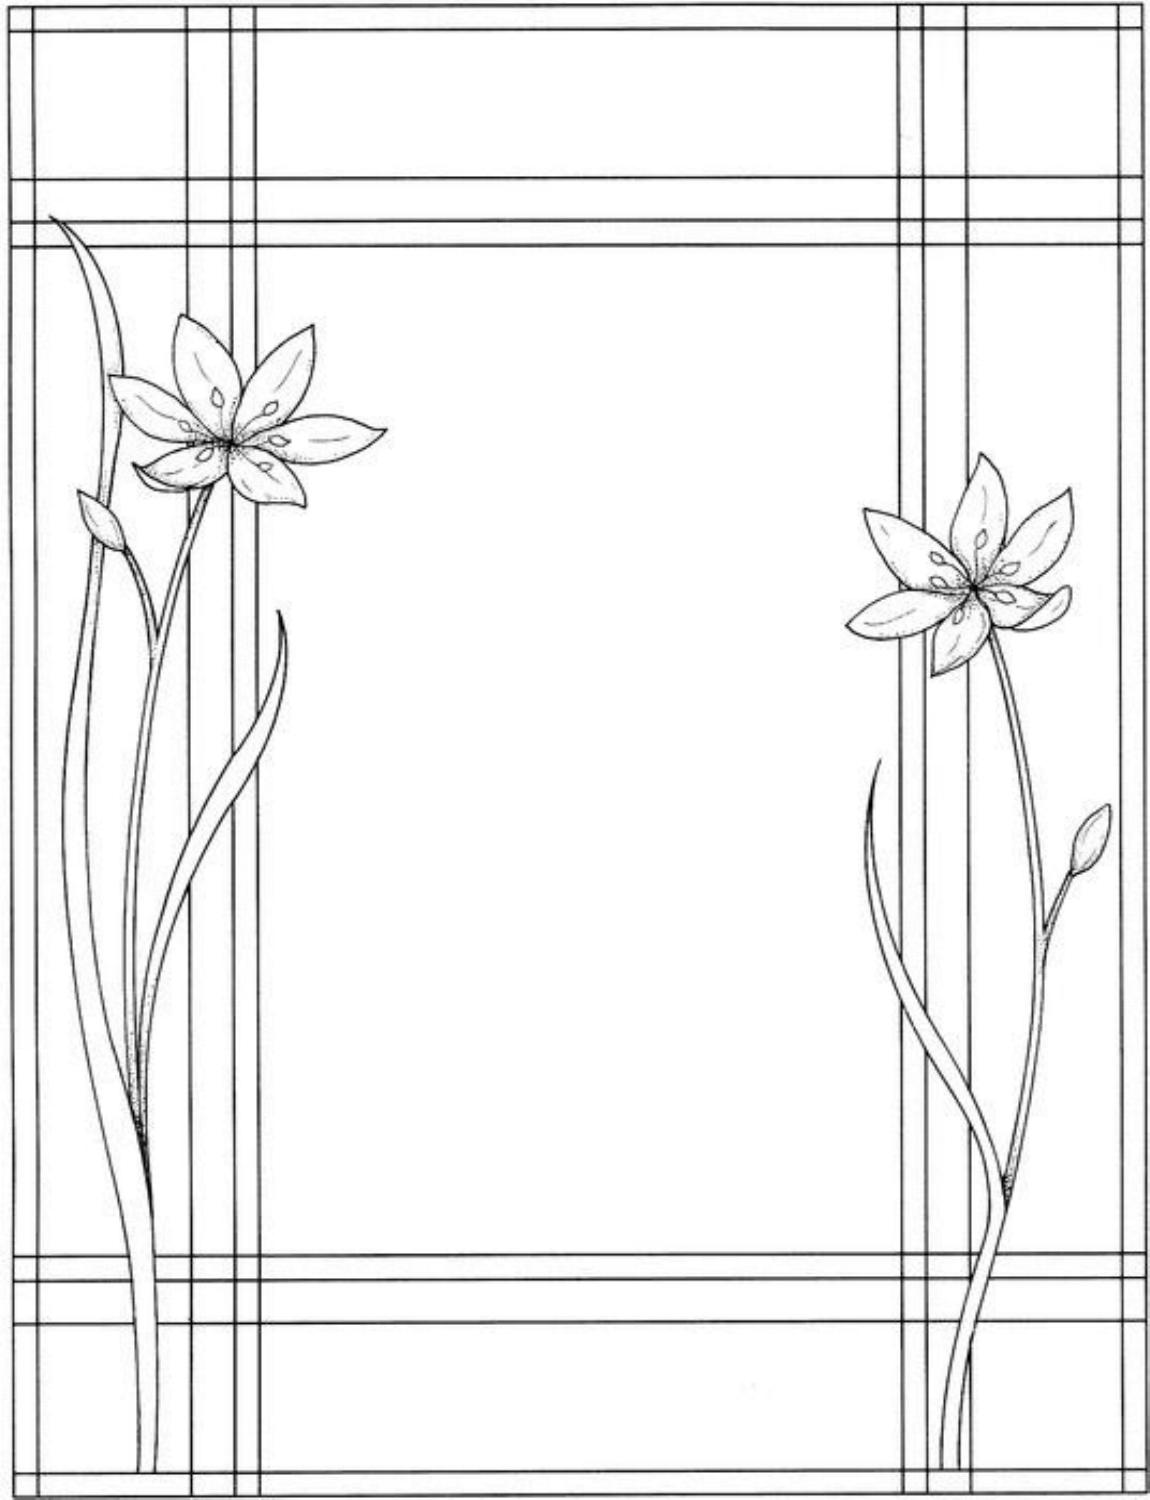 blank flower coloring pages - zen archangelism blank spell pages 2